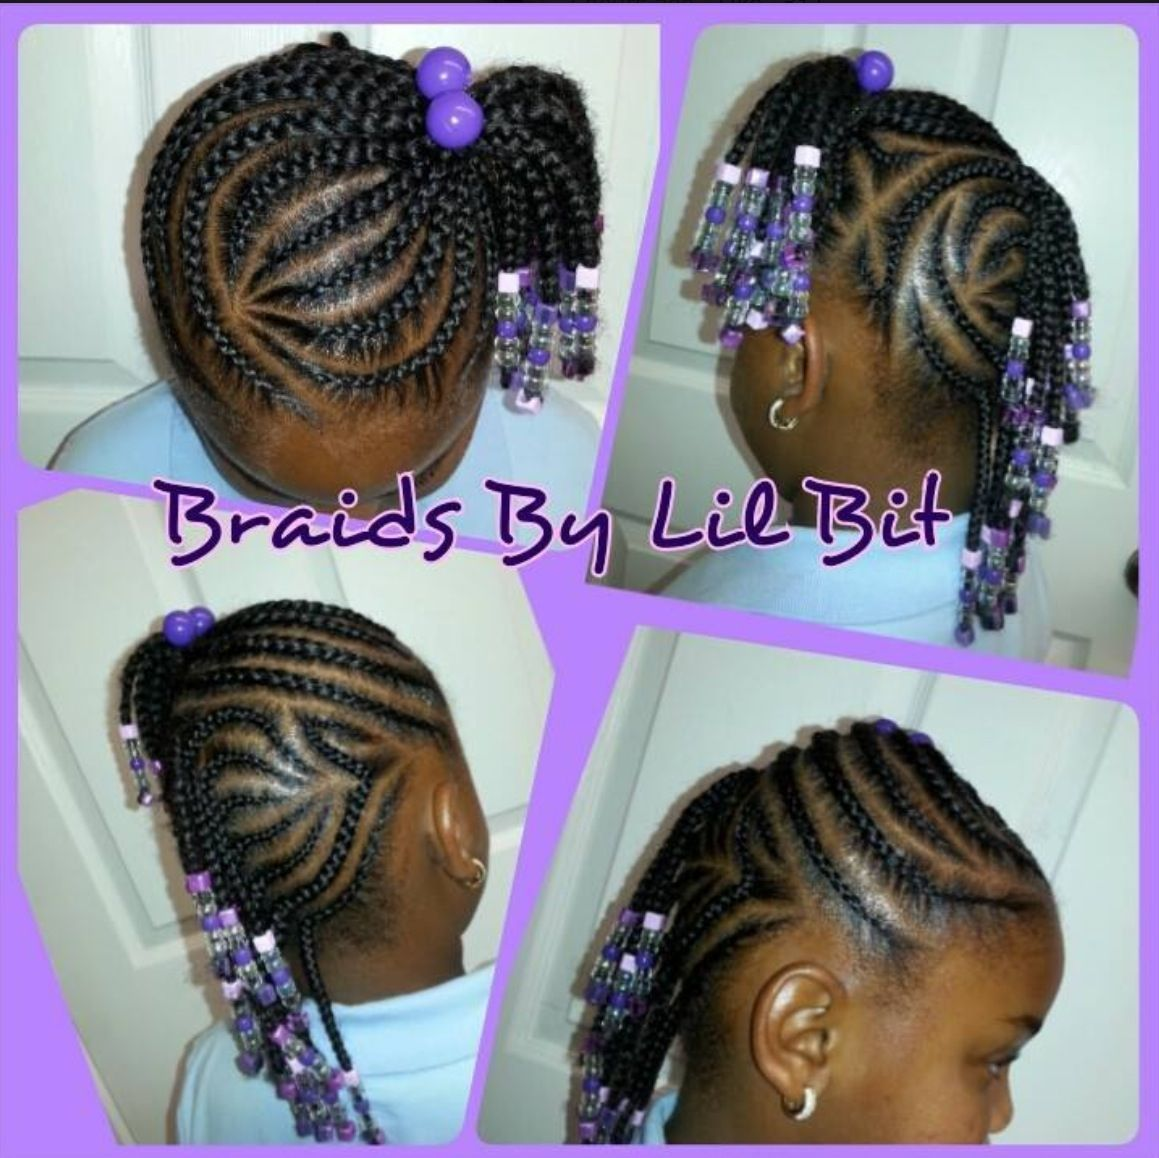 Fantastic 1000 Images About Niyah On Pinterest Braids And Beads Cornrows Hairstyles For Men Maxibearus